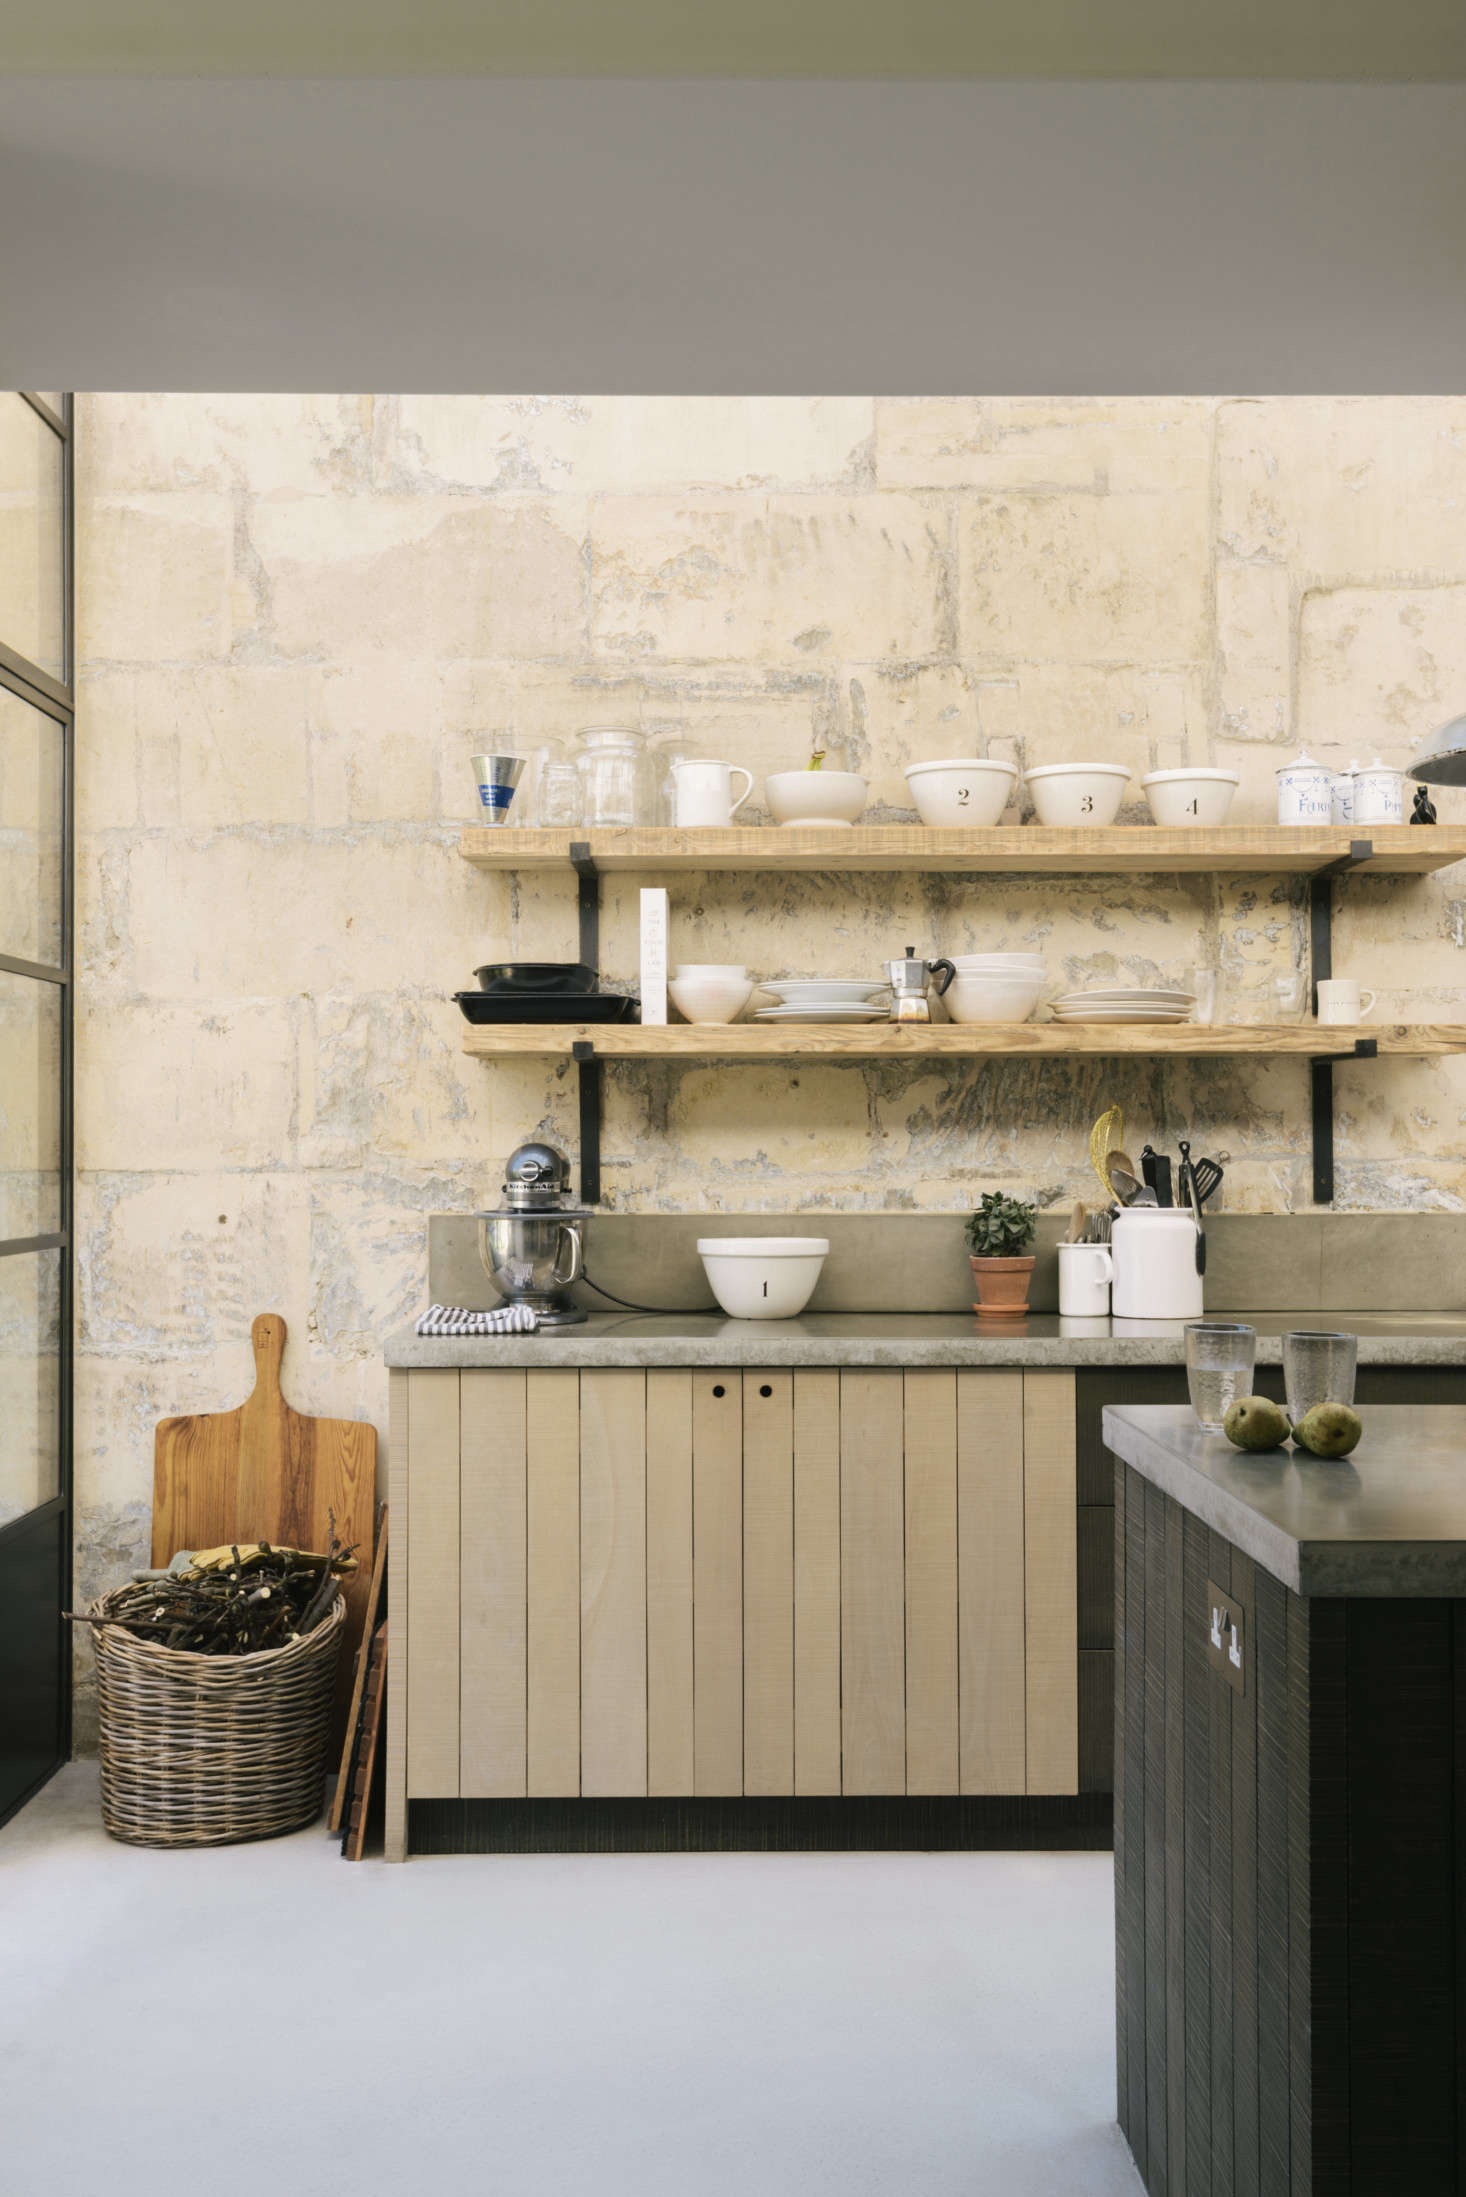 A lineup of black-and-white dishware, including numbered nesting bowls,line the open shelves. (See Burleigh Pudding Basins for the design with blue numbers.) Admiring the basket? Go toObject Lessons: The Almighty Wicker Basket.